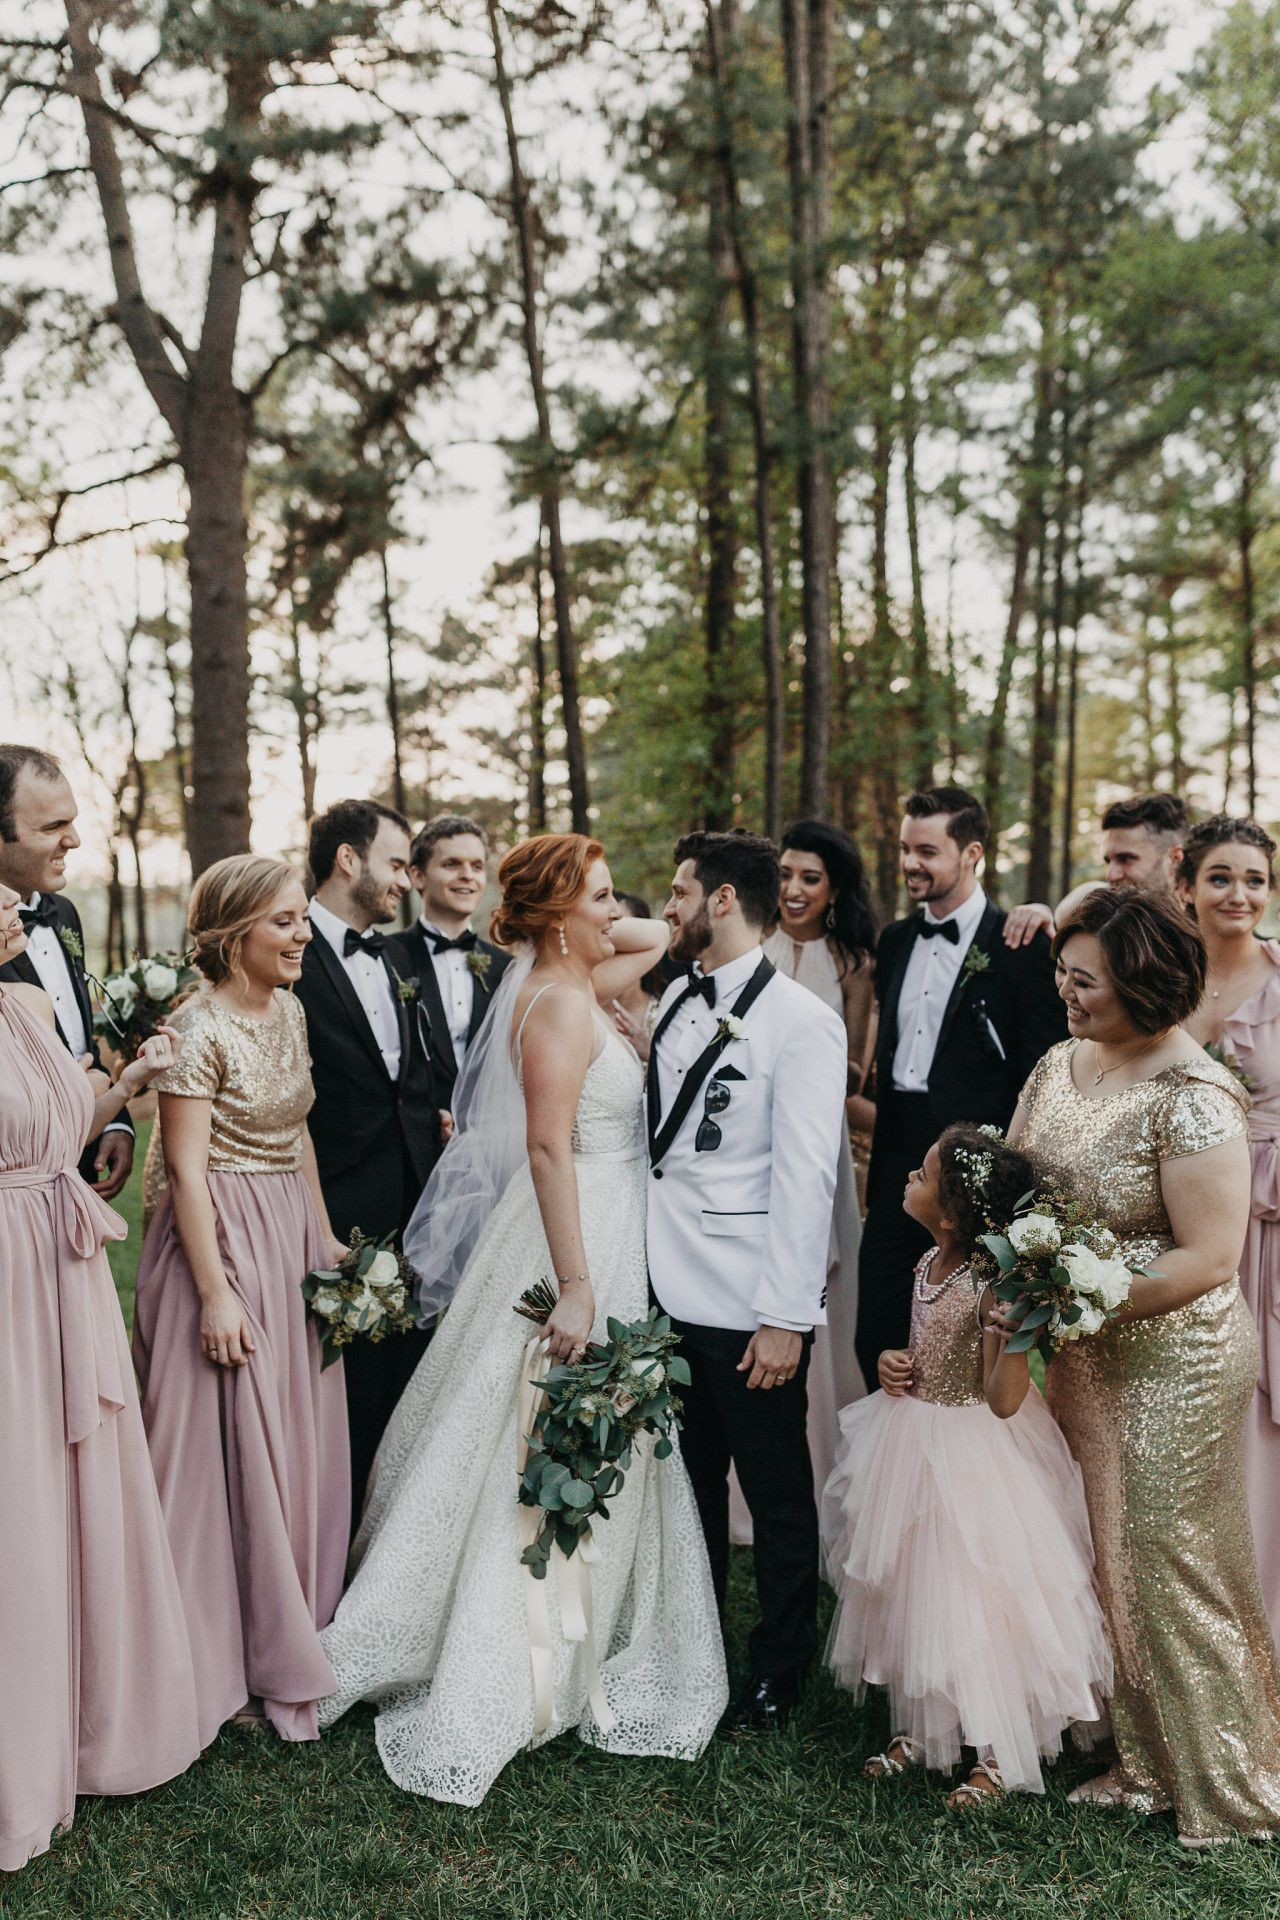 Classy Bridal Party Modern Bridal Party Weddings In Houston